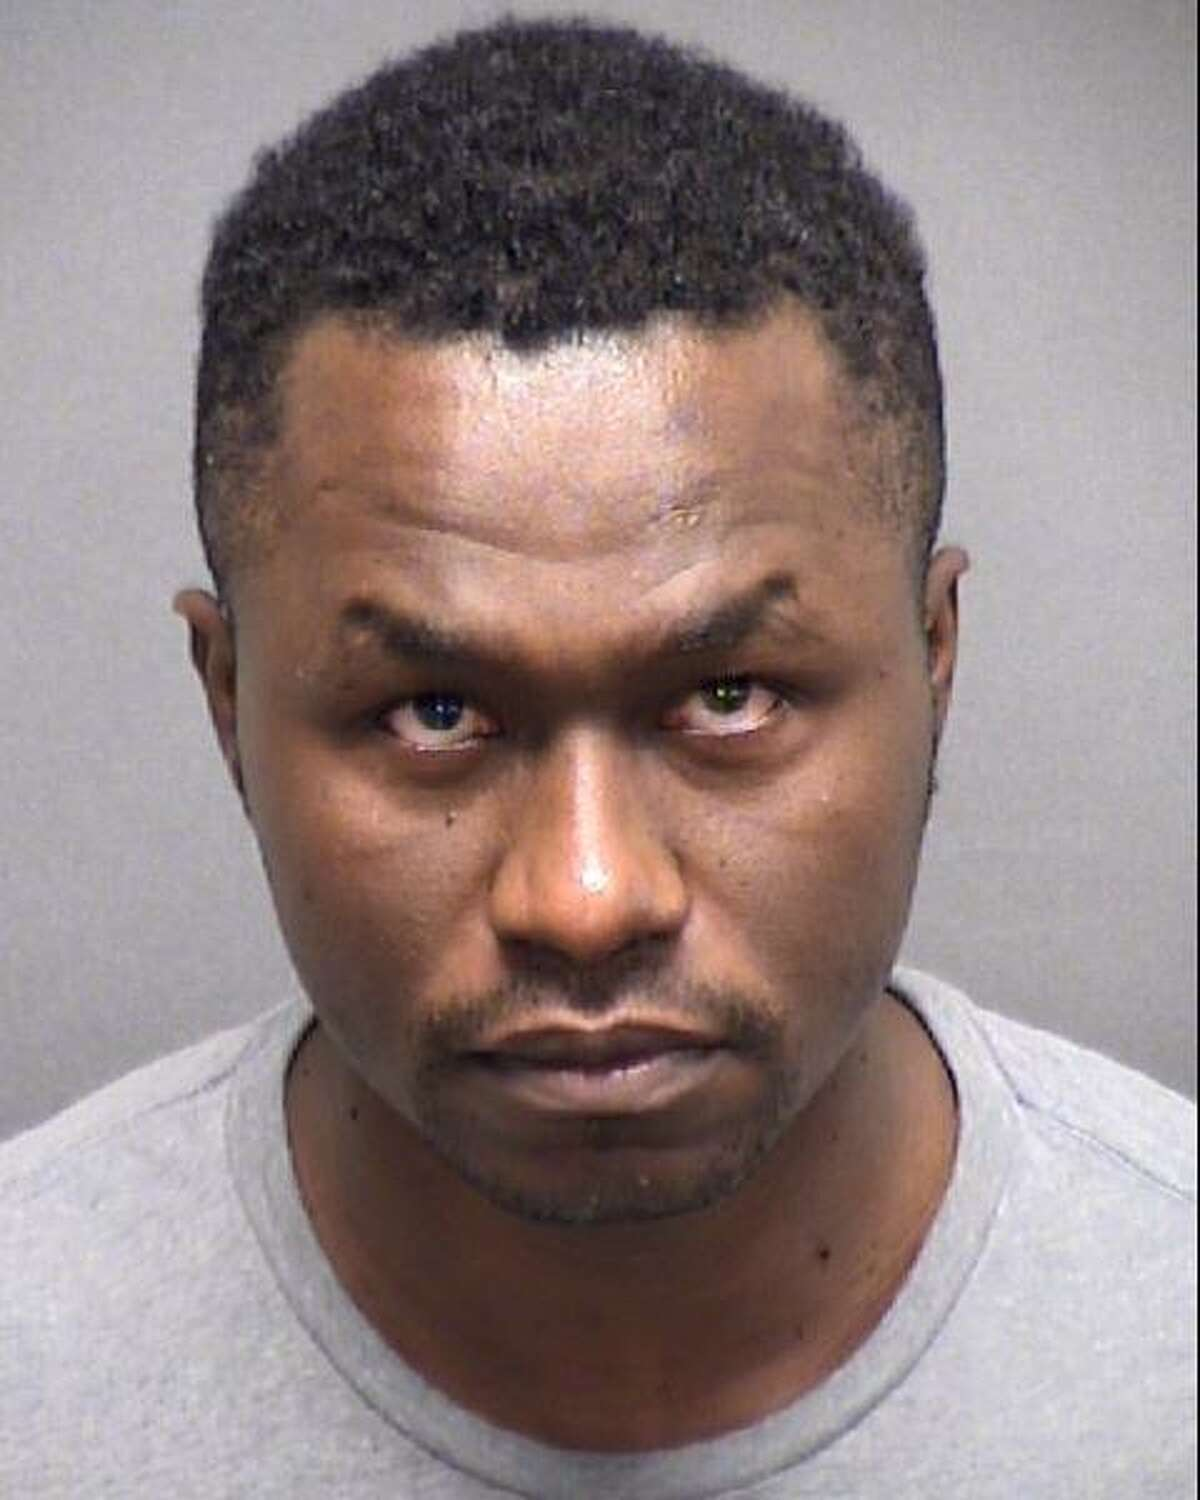 Andre Sean McDonald is seen in a July 13, 2019 booking photo provided by the Bexar County Sheriff Department. McDonald, 40, an Air Force Reserve officer, was arrested July 13, and charged with murder in the death of his wife, Andreen McDonald, whose remains were found July 11. His bail was set at $2 million.